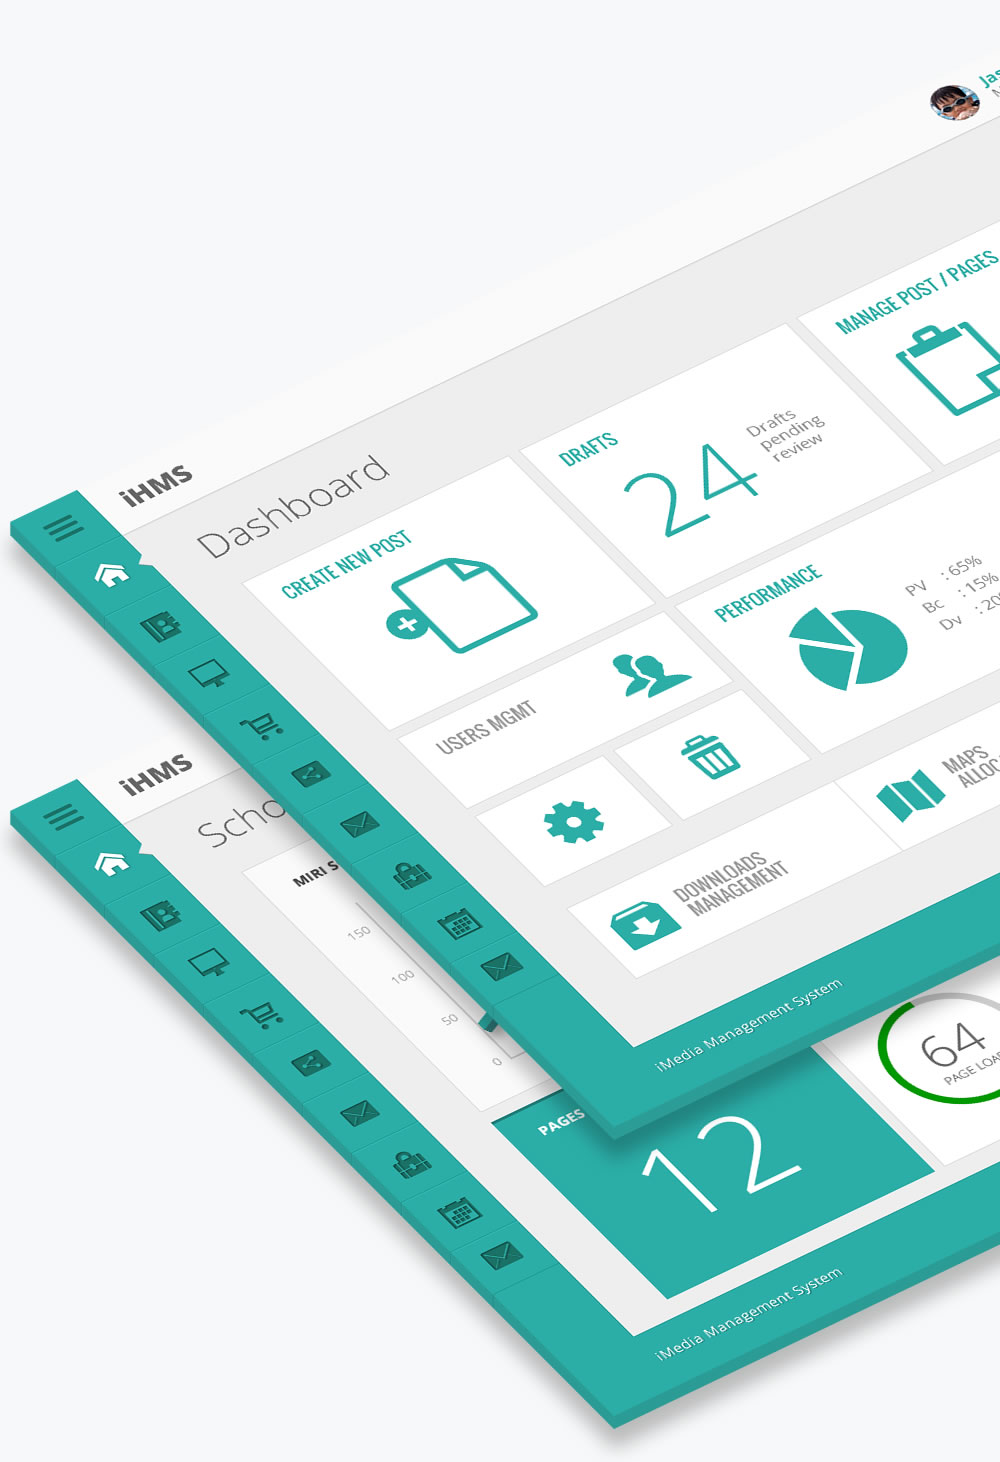 Metro Push Admin Dashboard User Interface Design by Jonath Lee